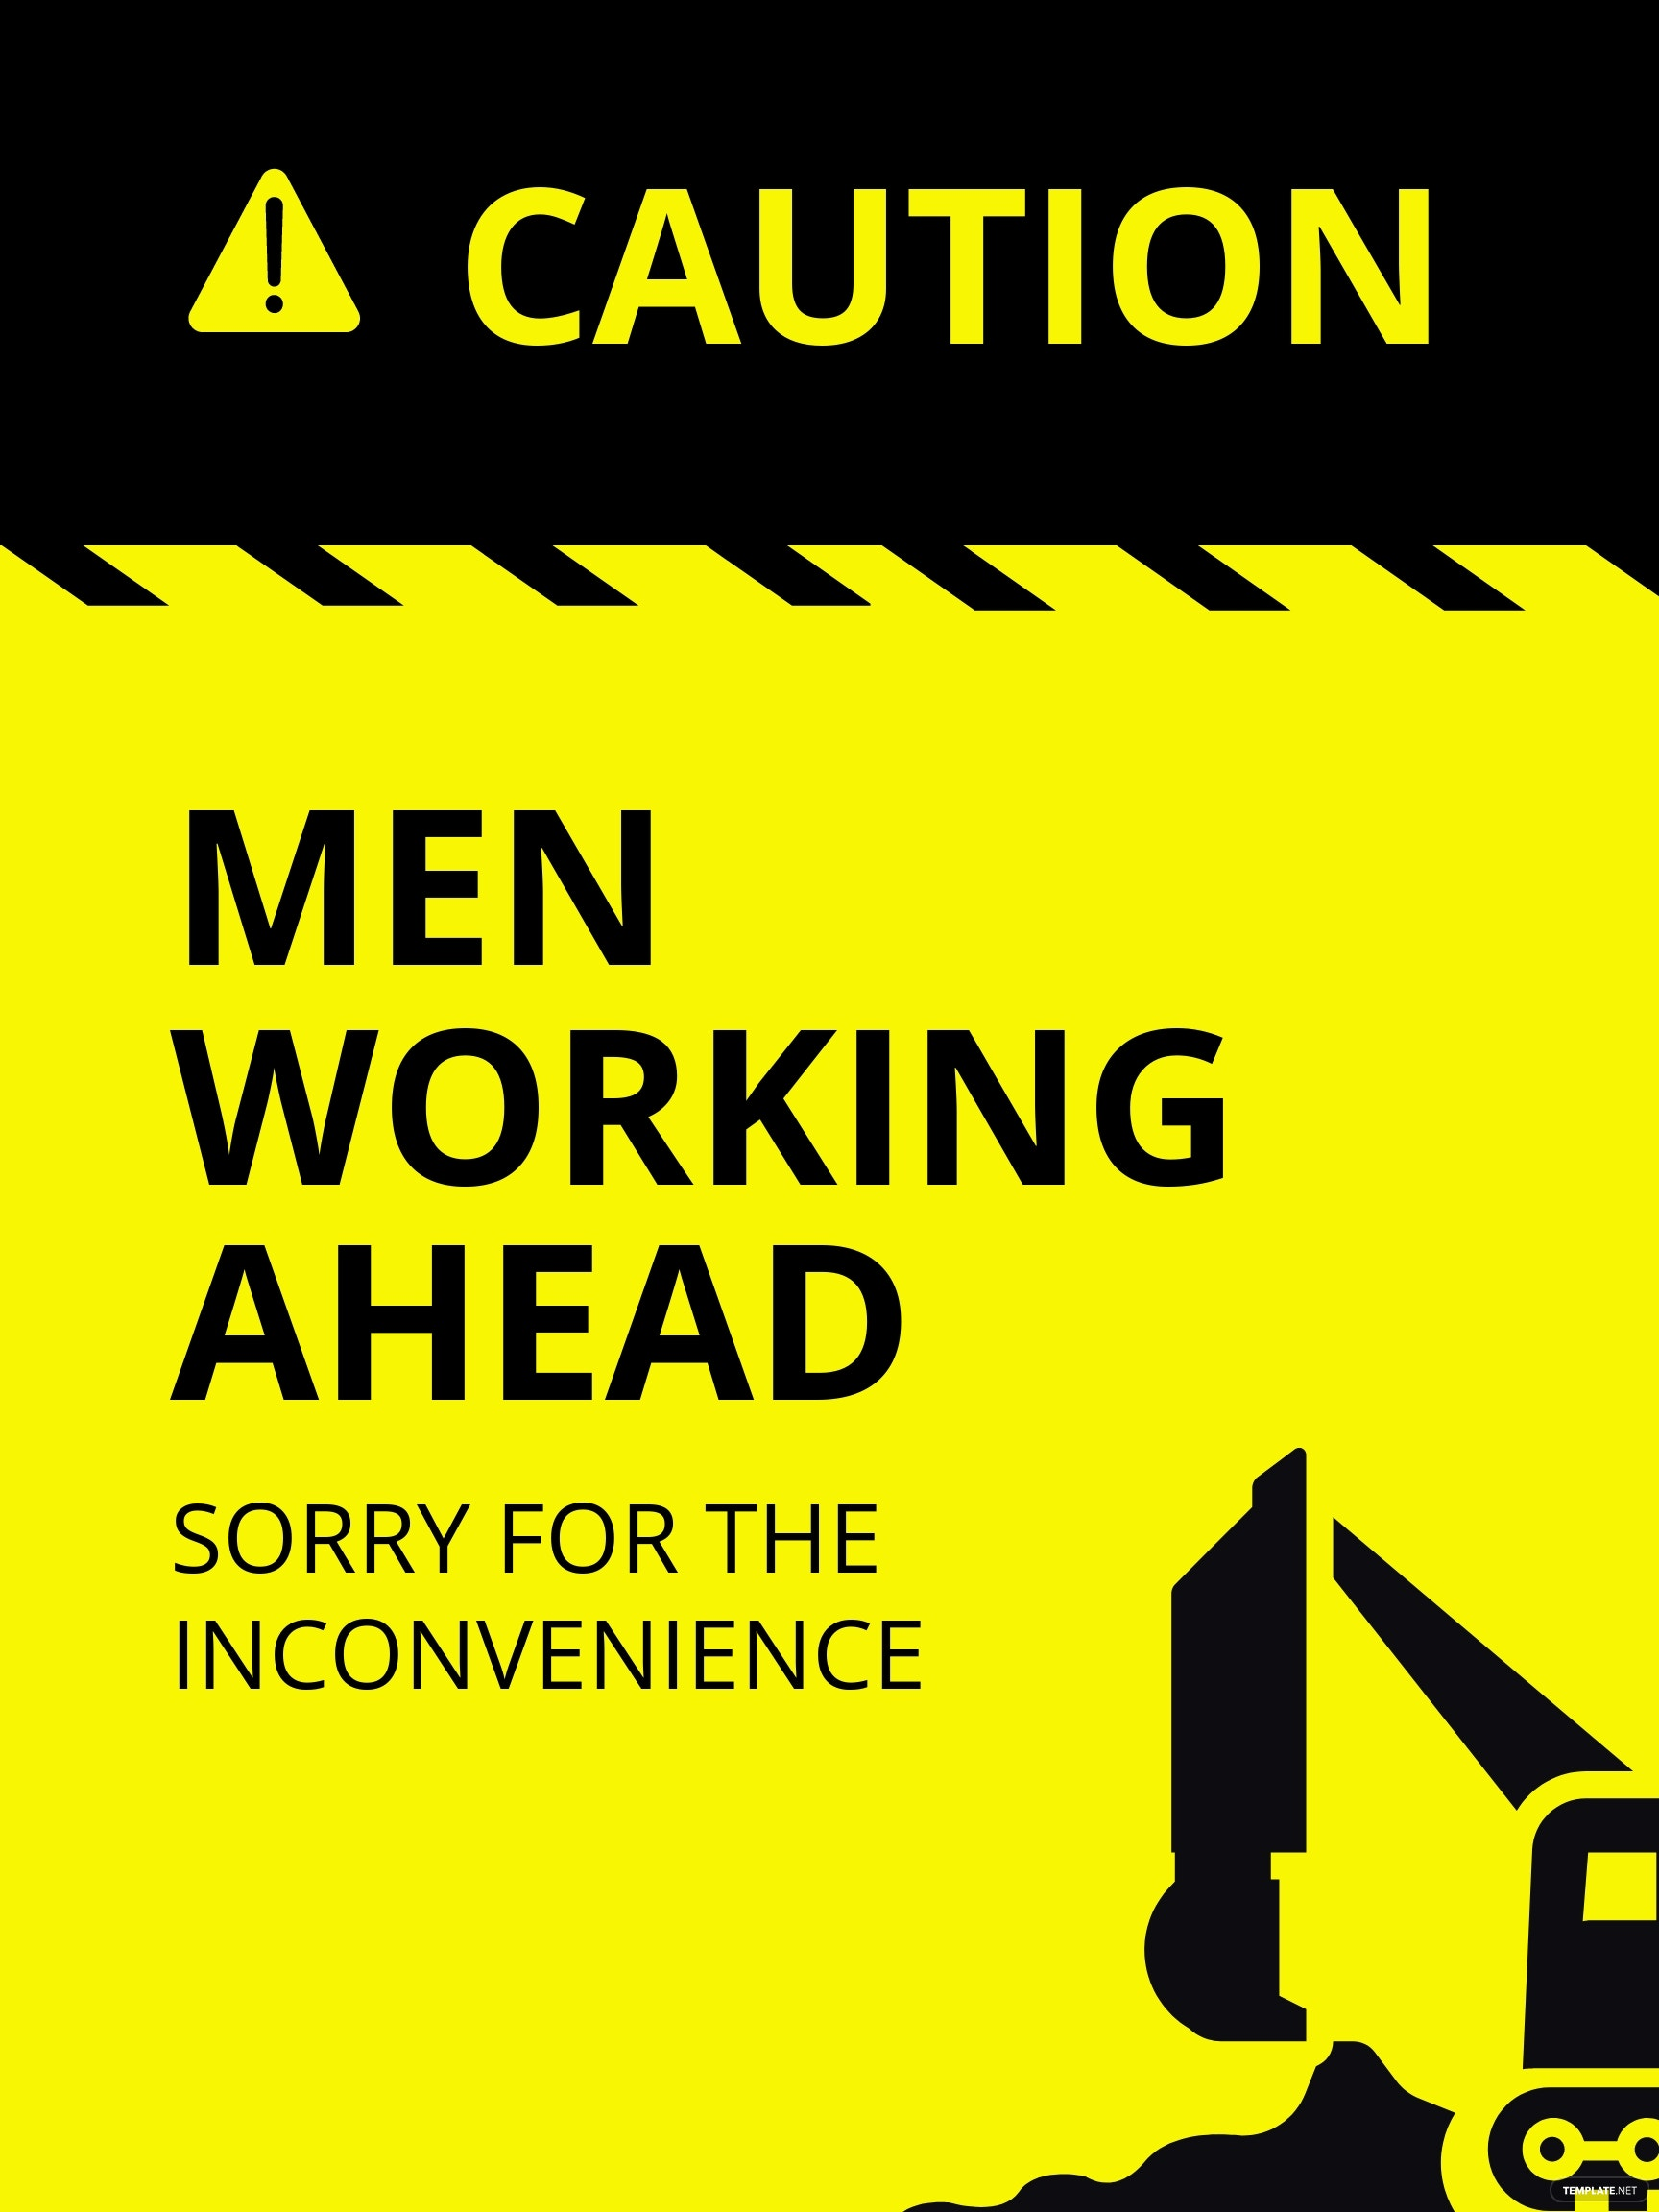 Caution Workers Ahead Sign Template